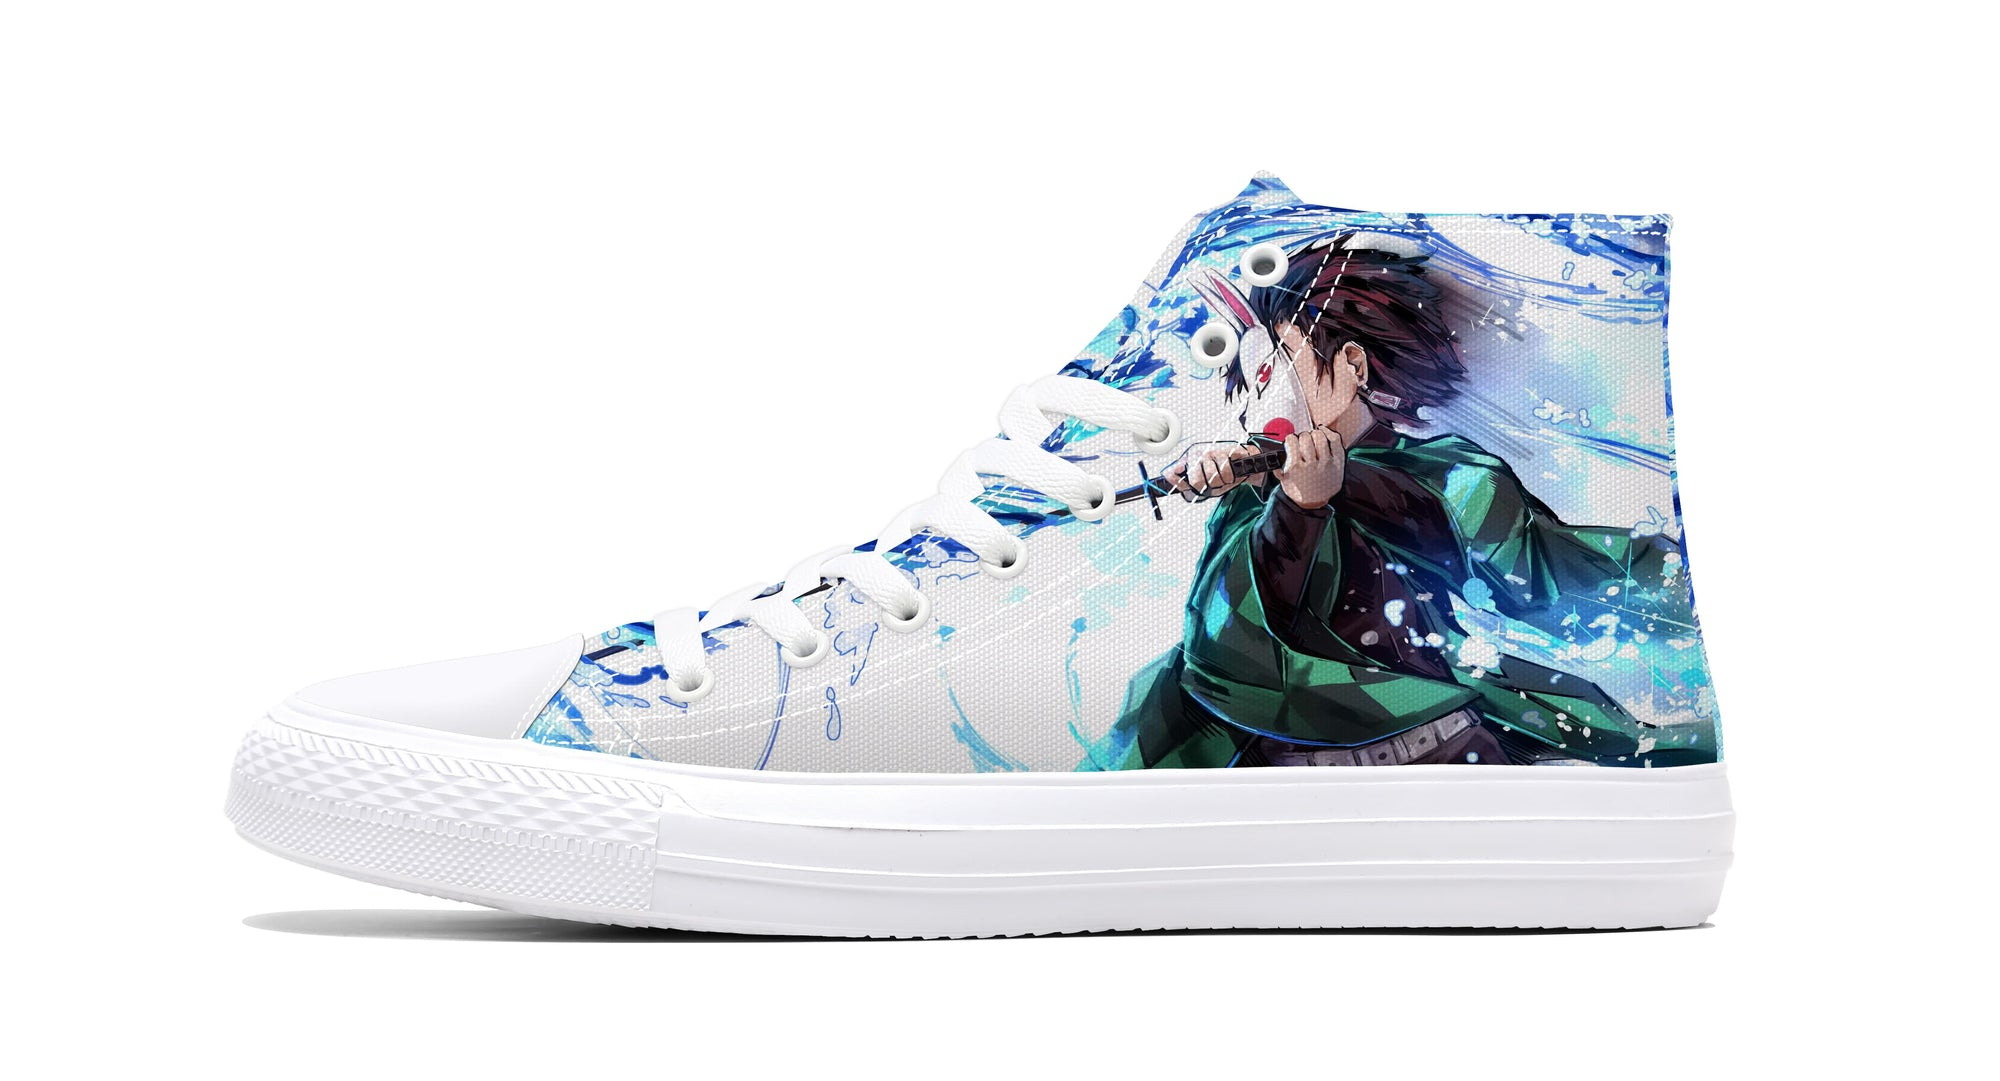 Tanjiro Kamado Water Breathing Dragon Sneakers Demon Sneaker Demon Slayer Kimetsu No Yaiba Shoes